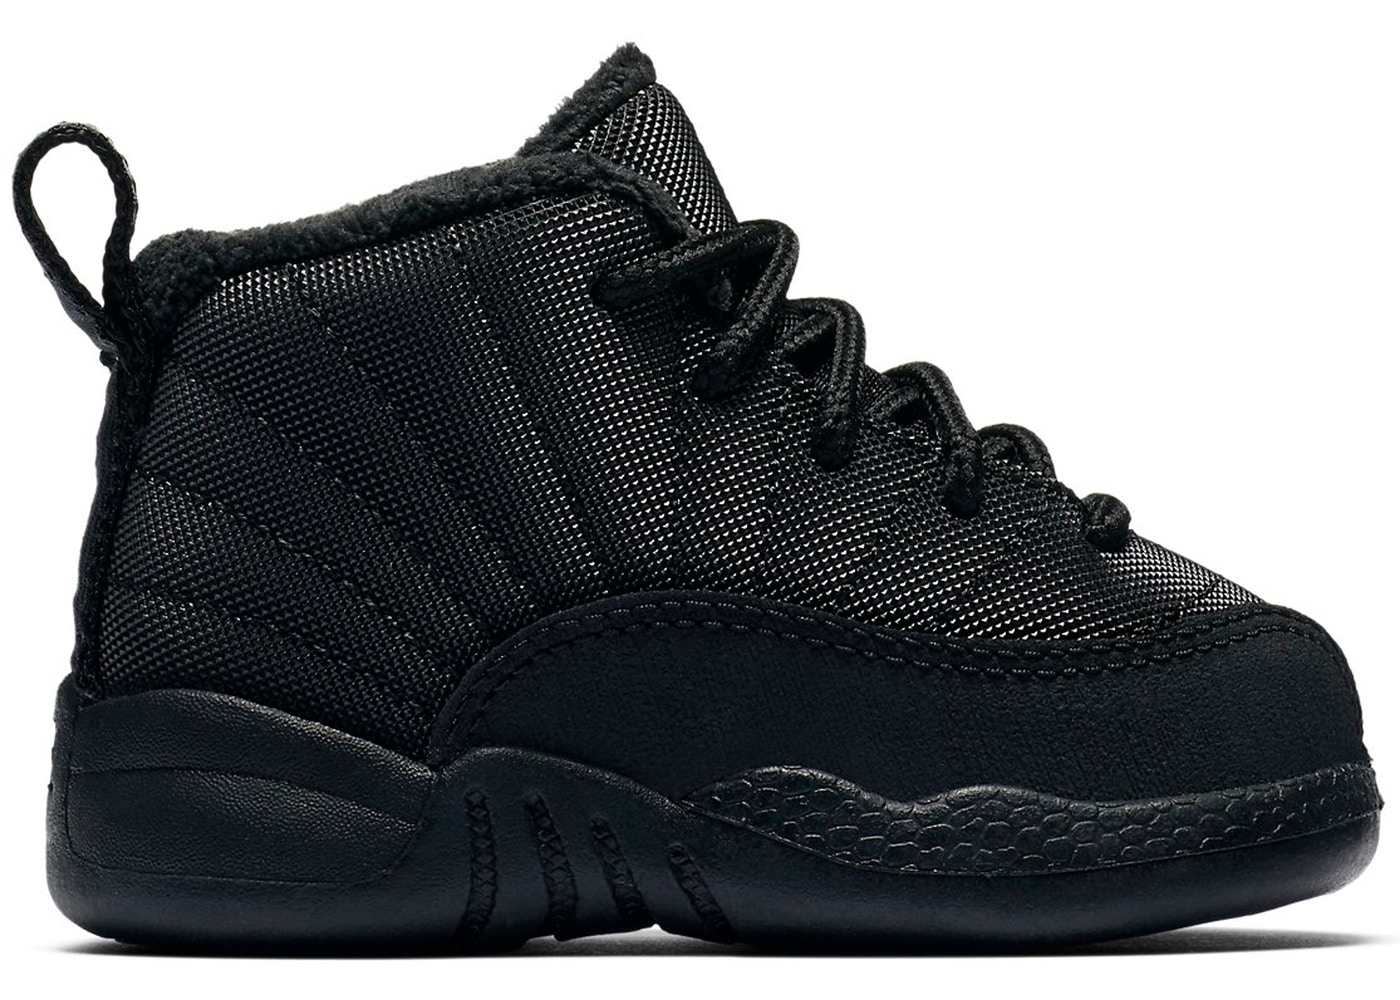 air jordan 12 retro winter release date